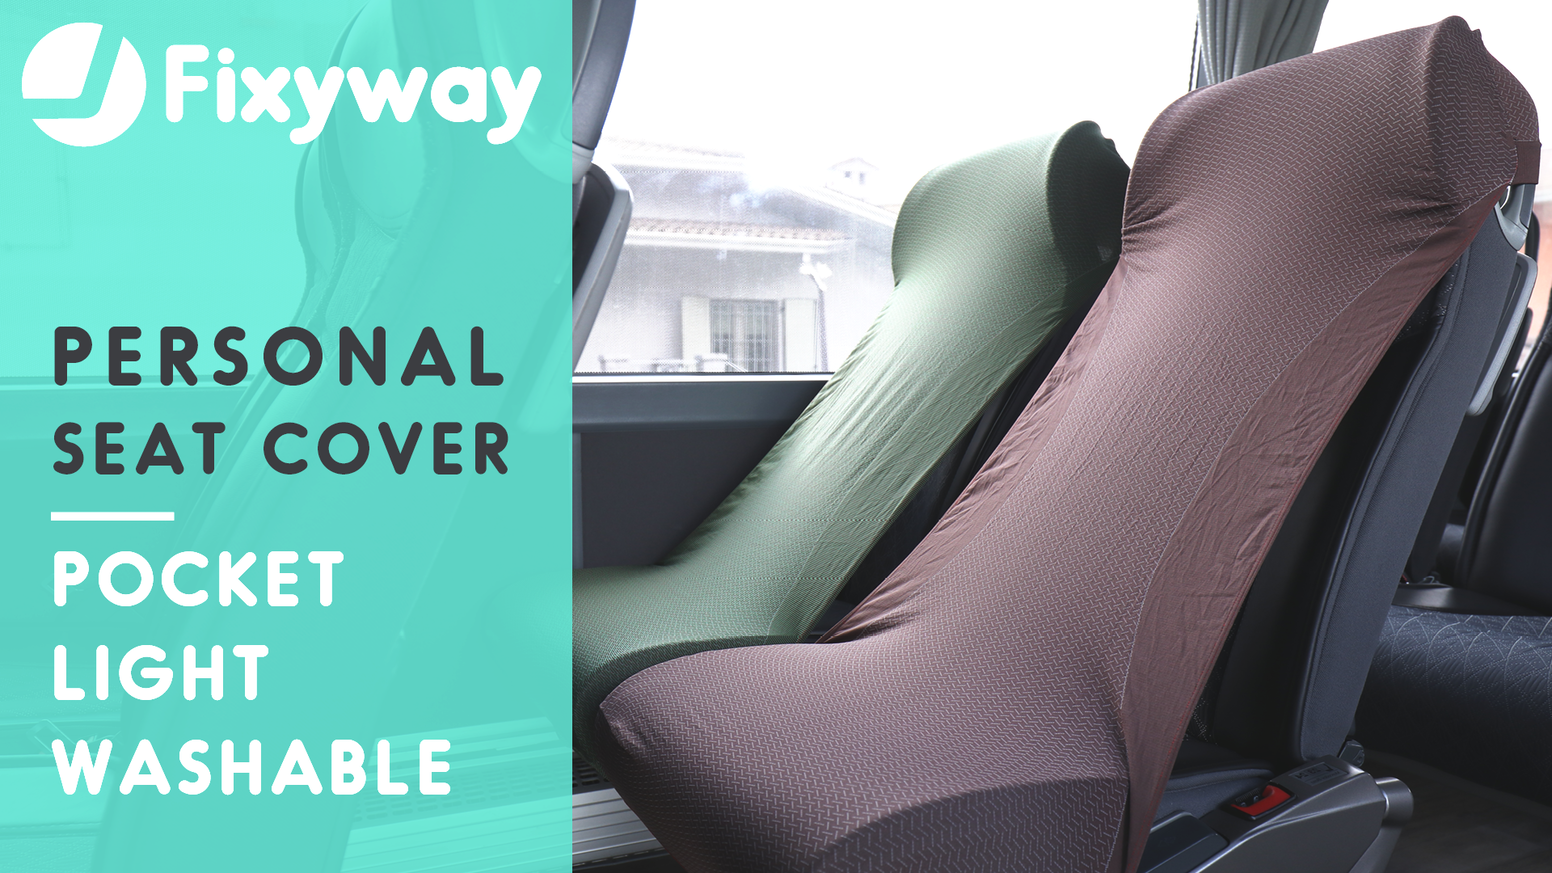 Lightweight Bacteriostatic And Washable Will Make Your Trip More Comfortable Safe So